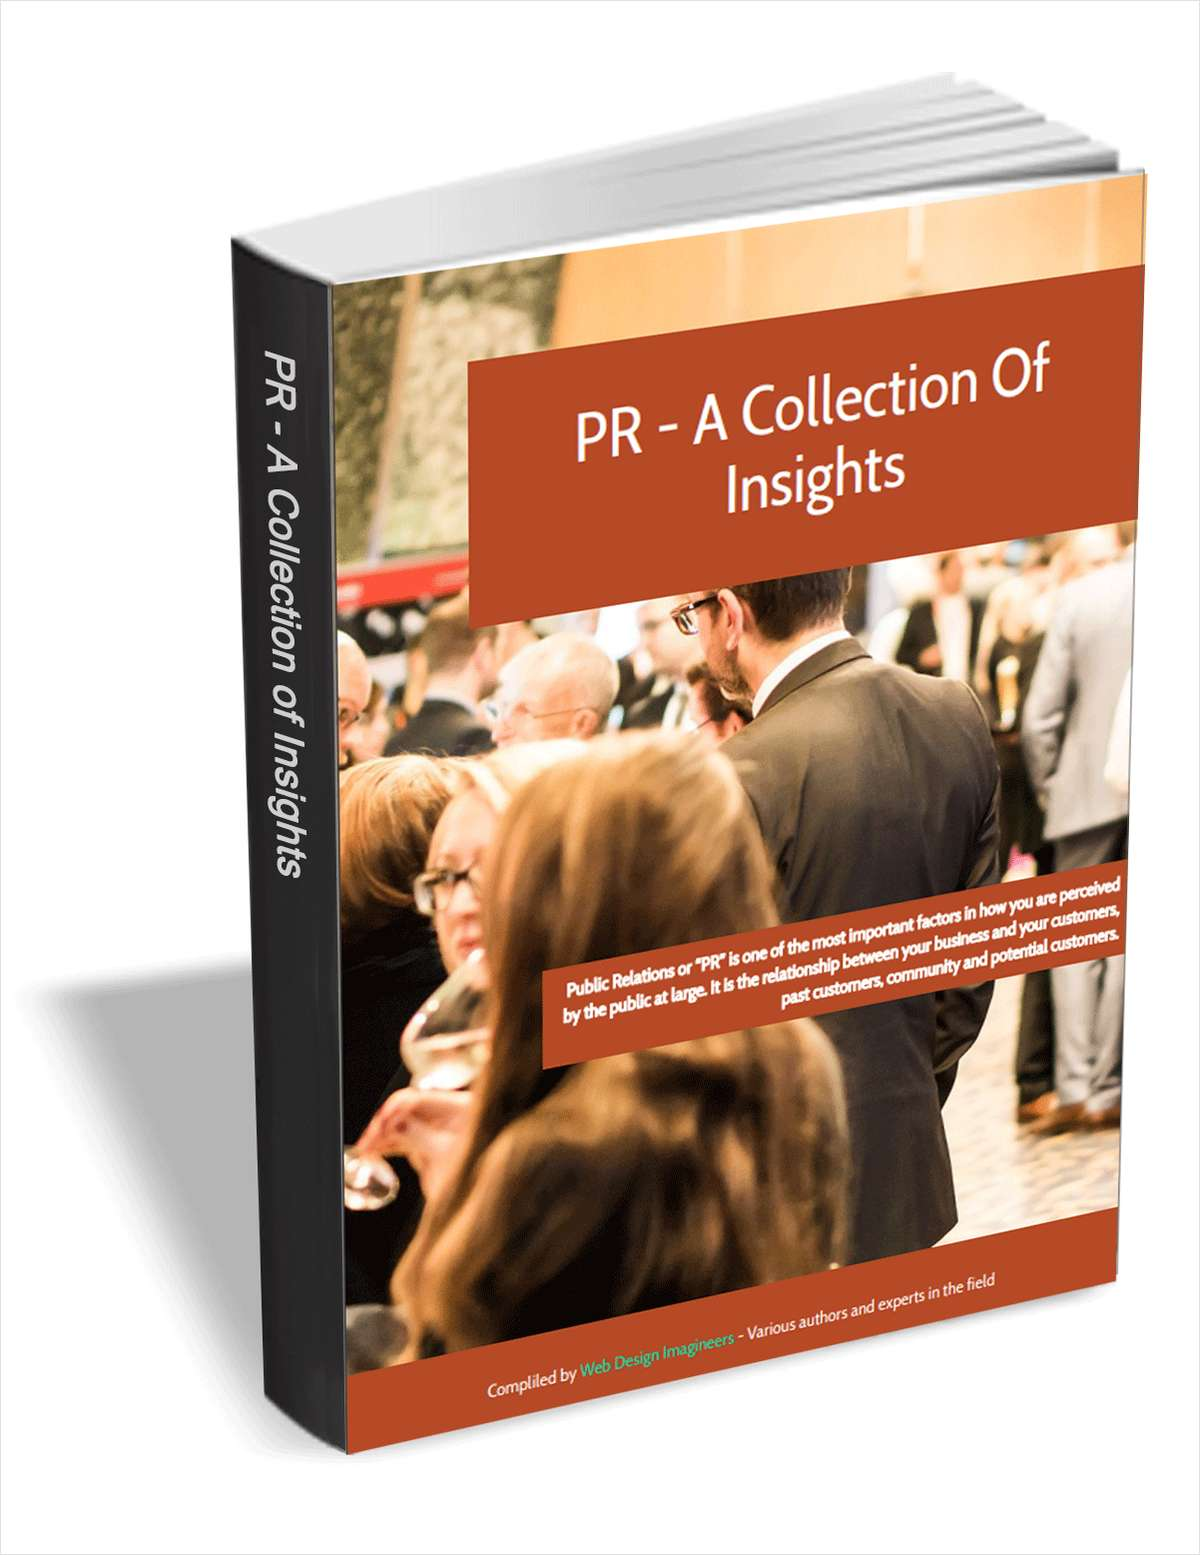 PR - A Collection of Insights